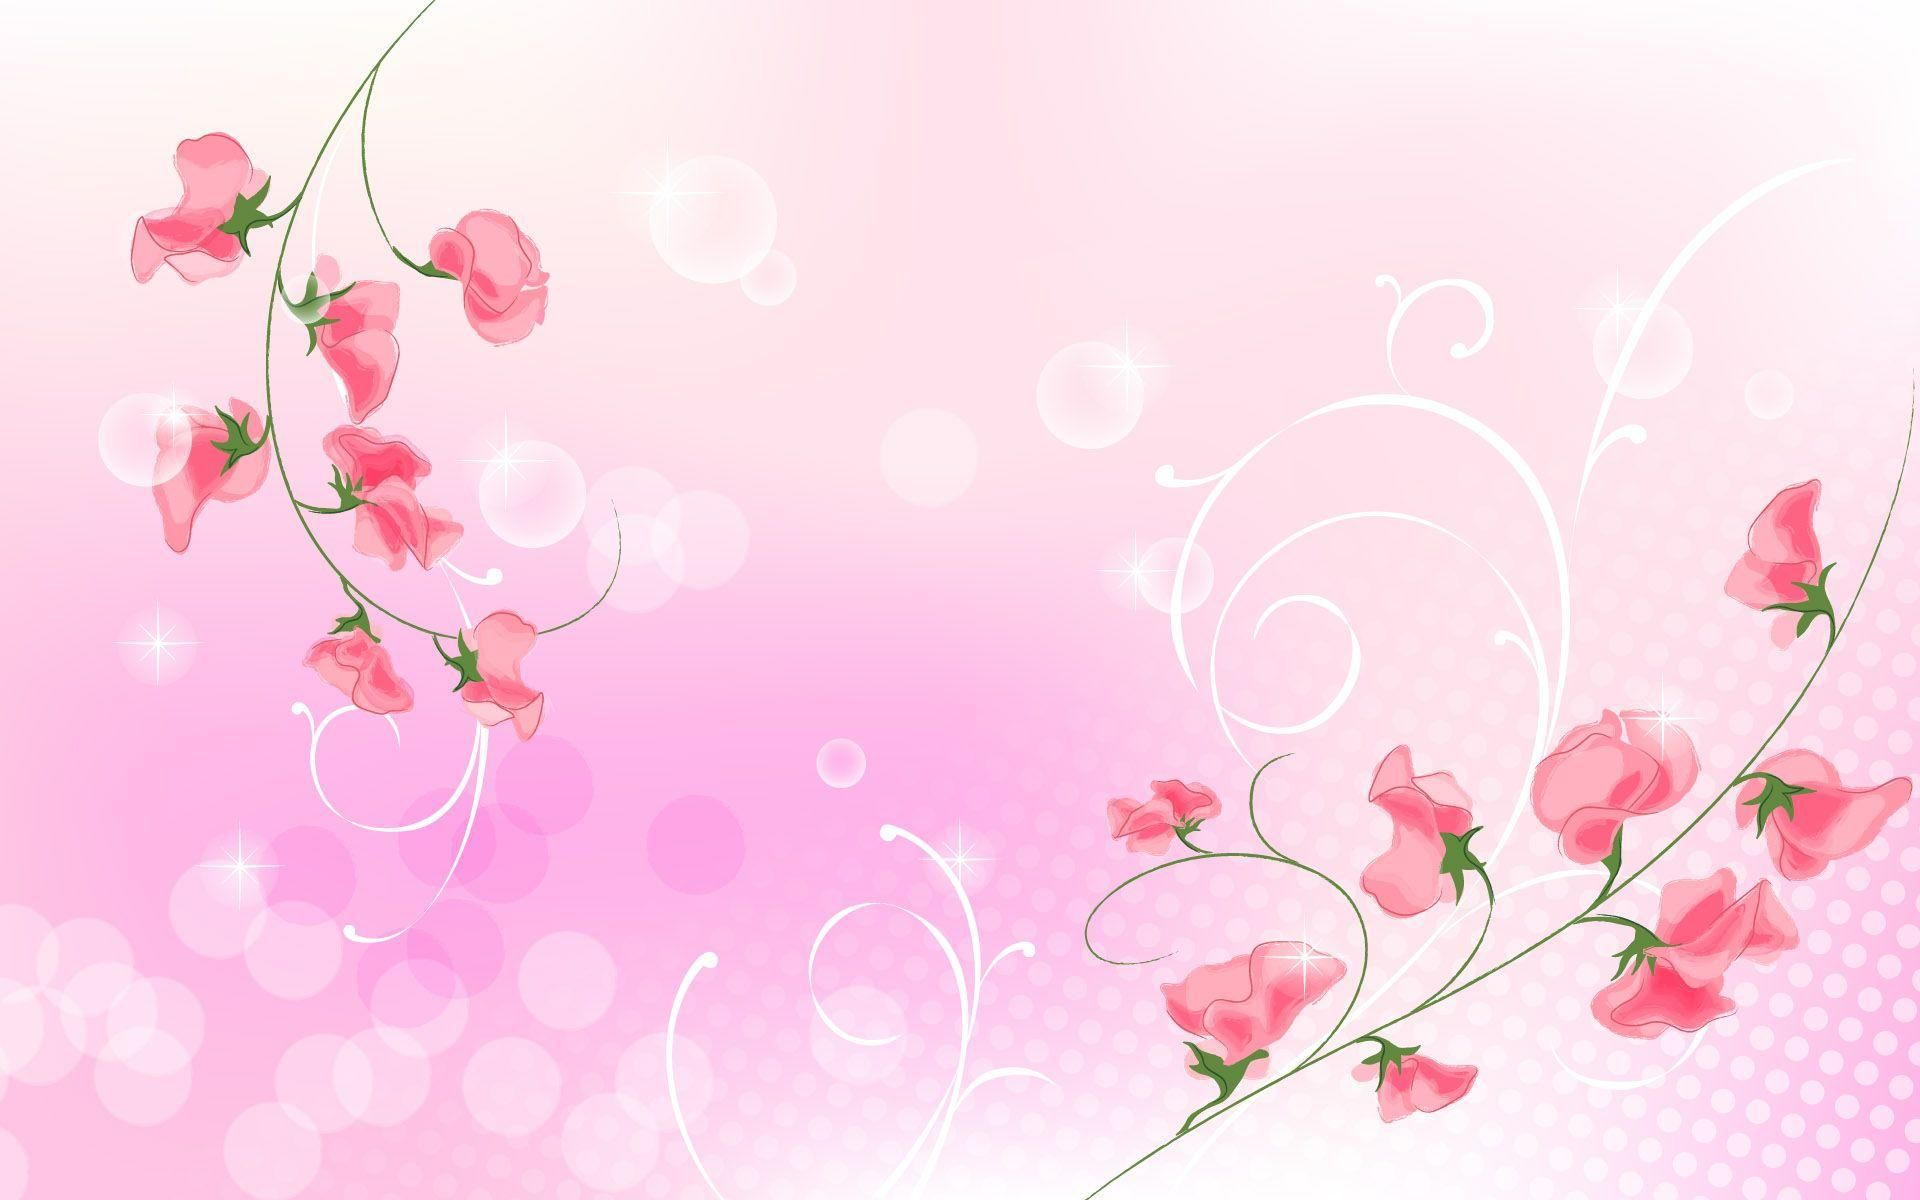 Light Pink Flower Wallpapers Wallpaper Cave News To Go 4